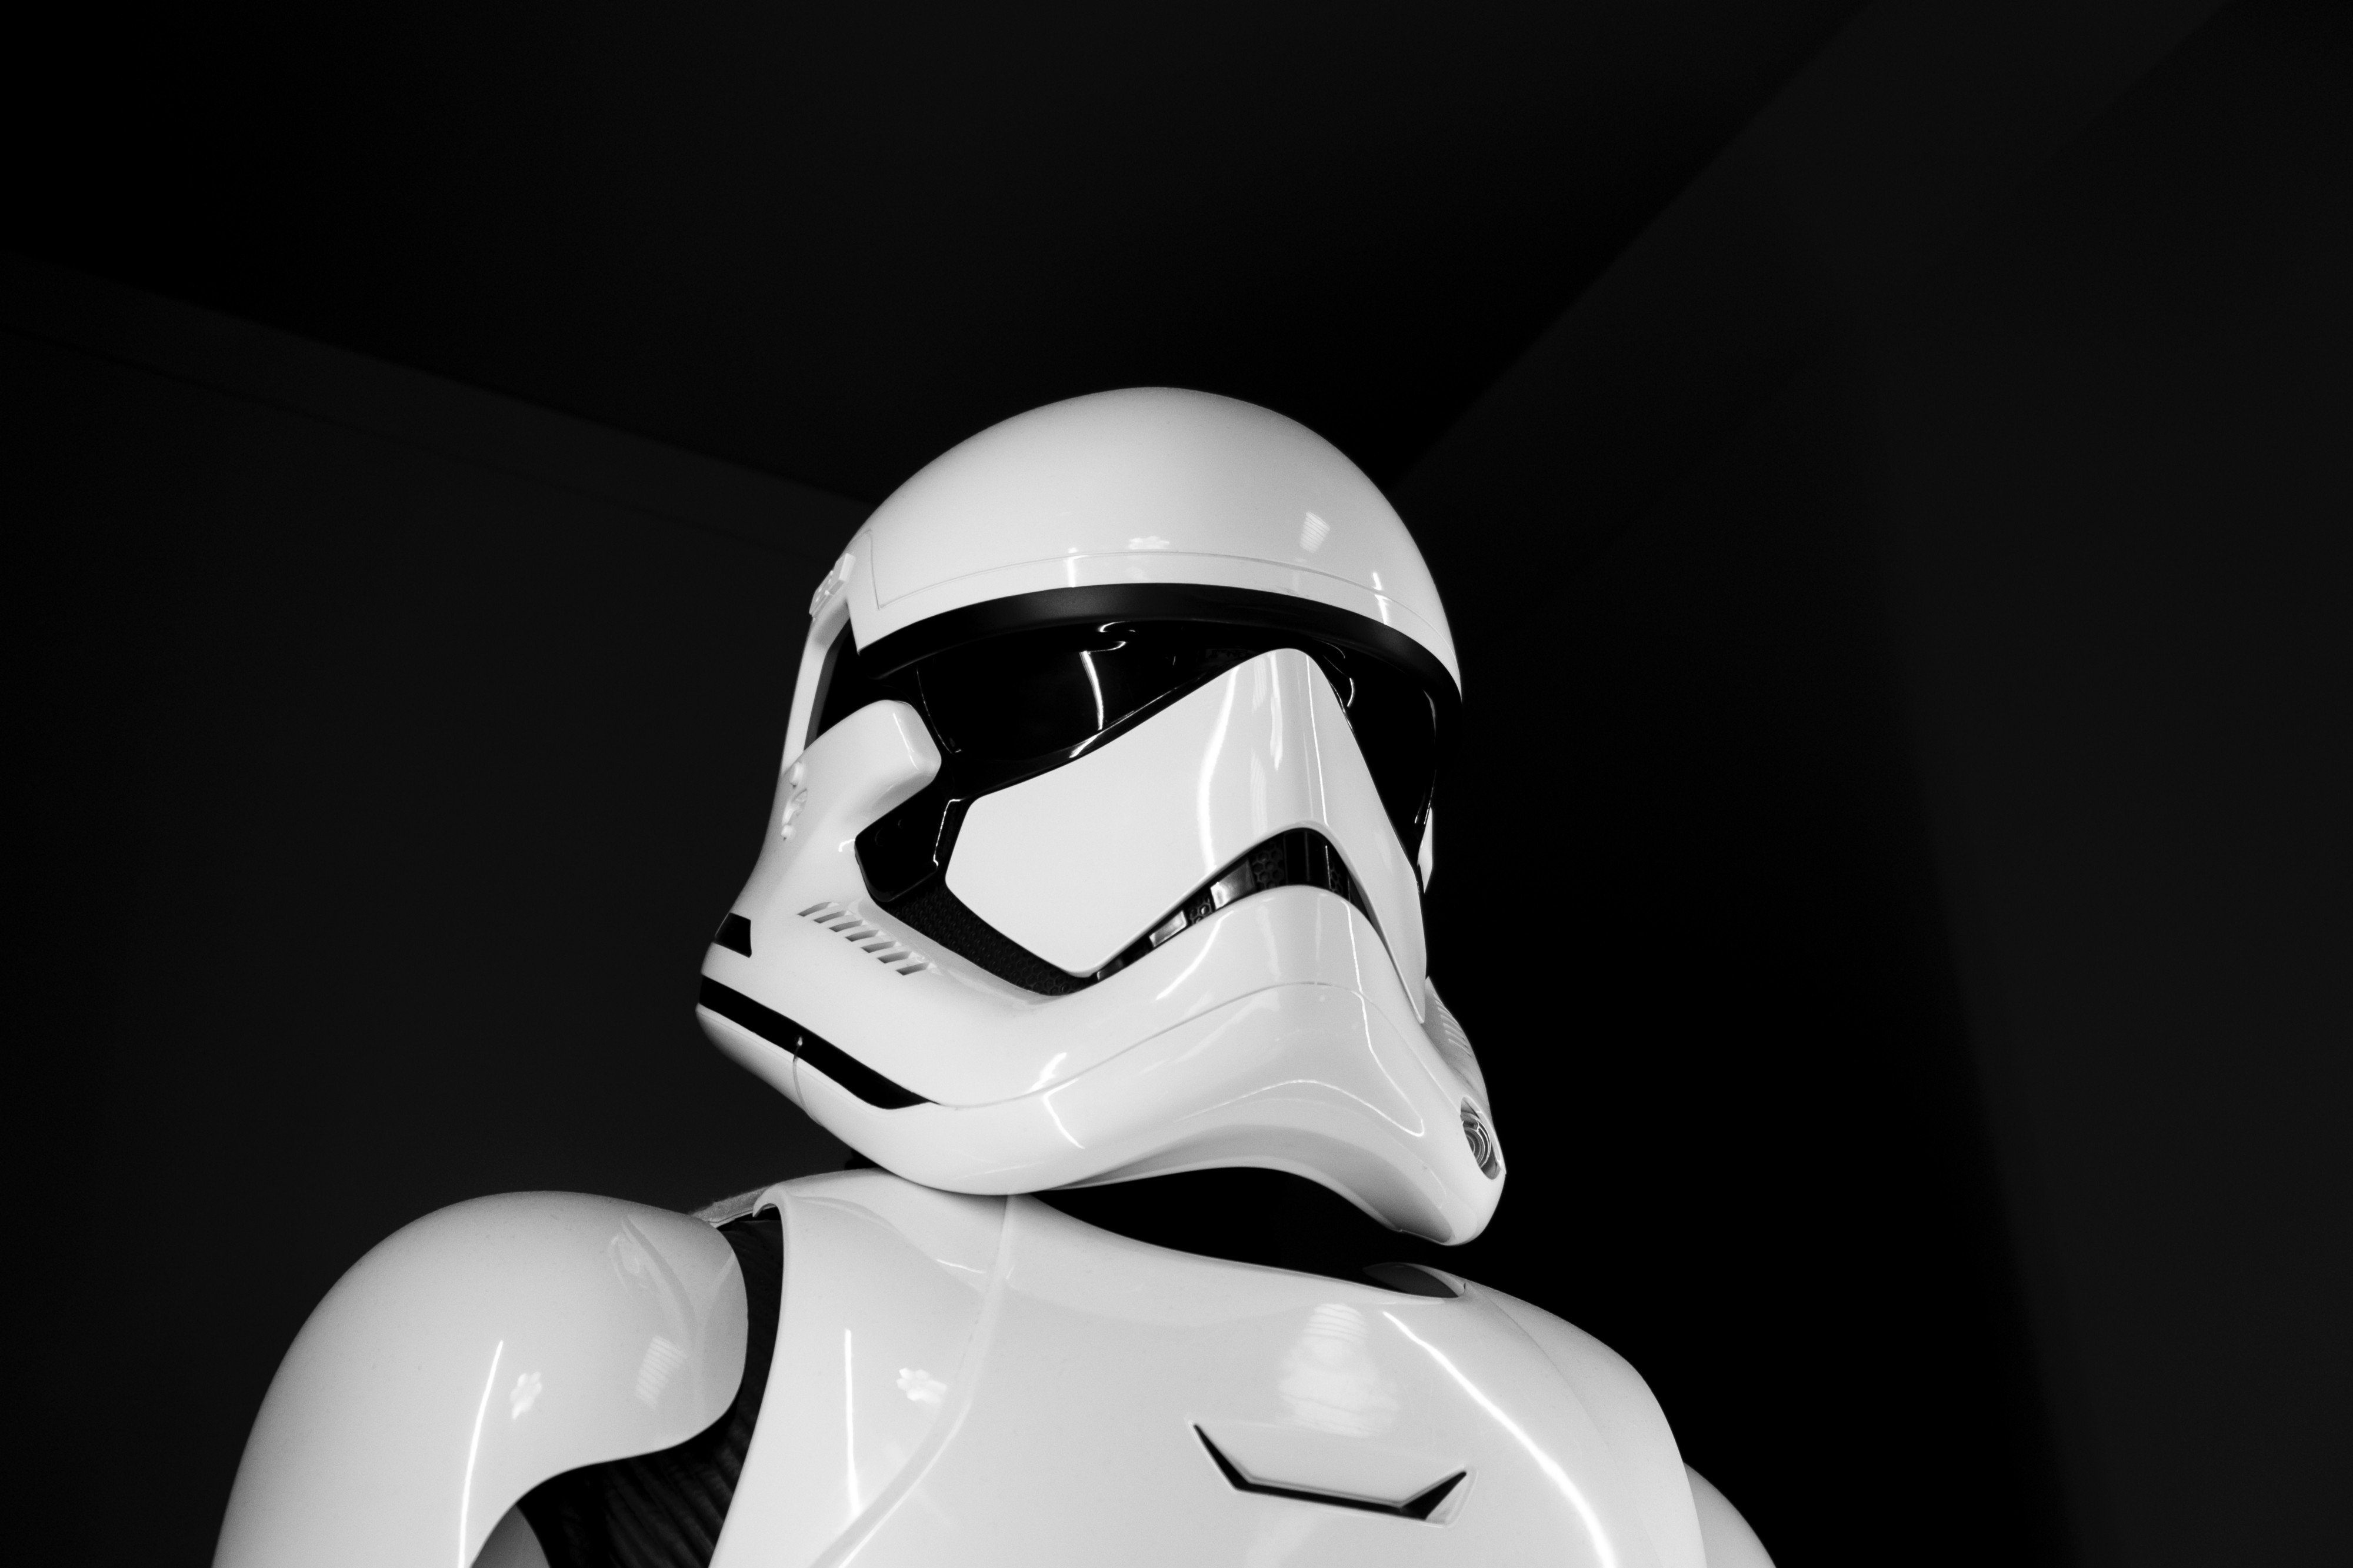 Star Wars Stormtrooper offering protection